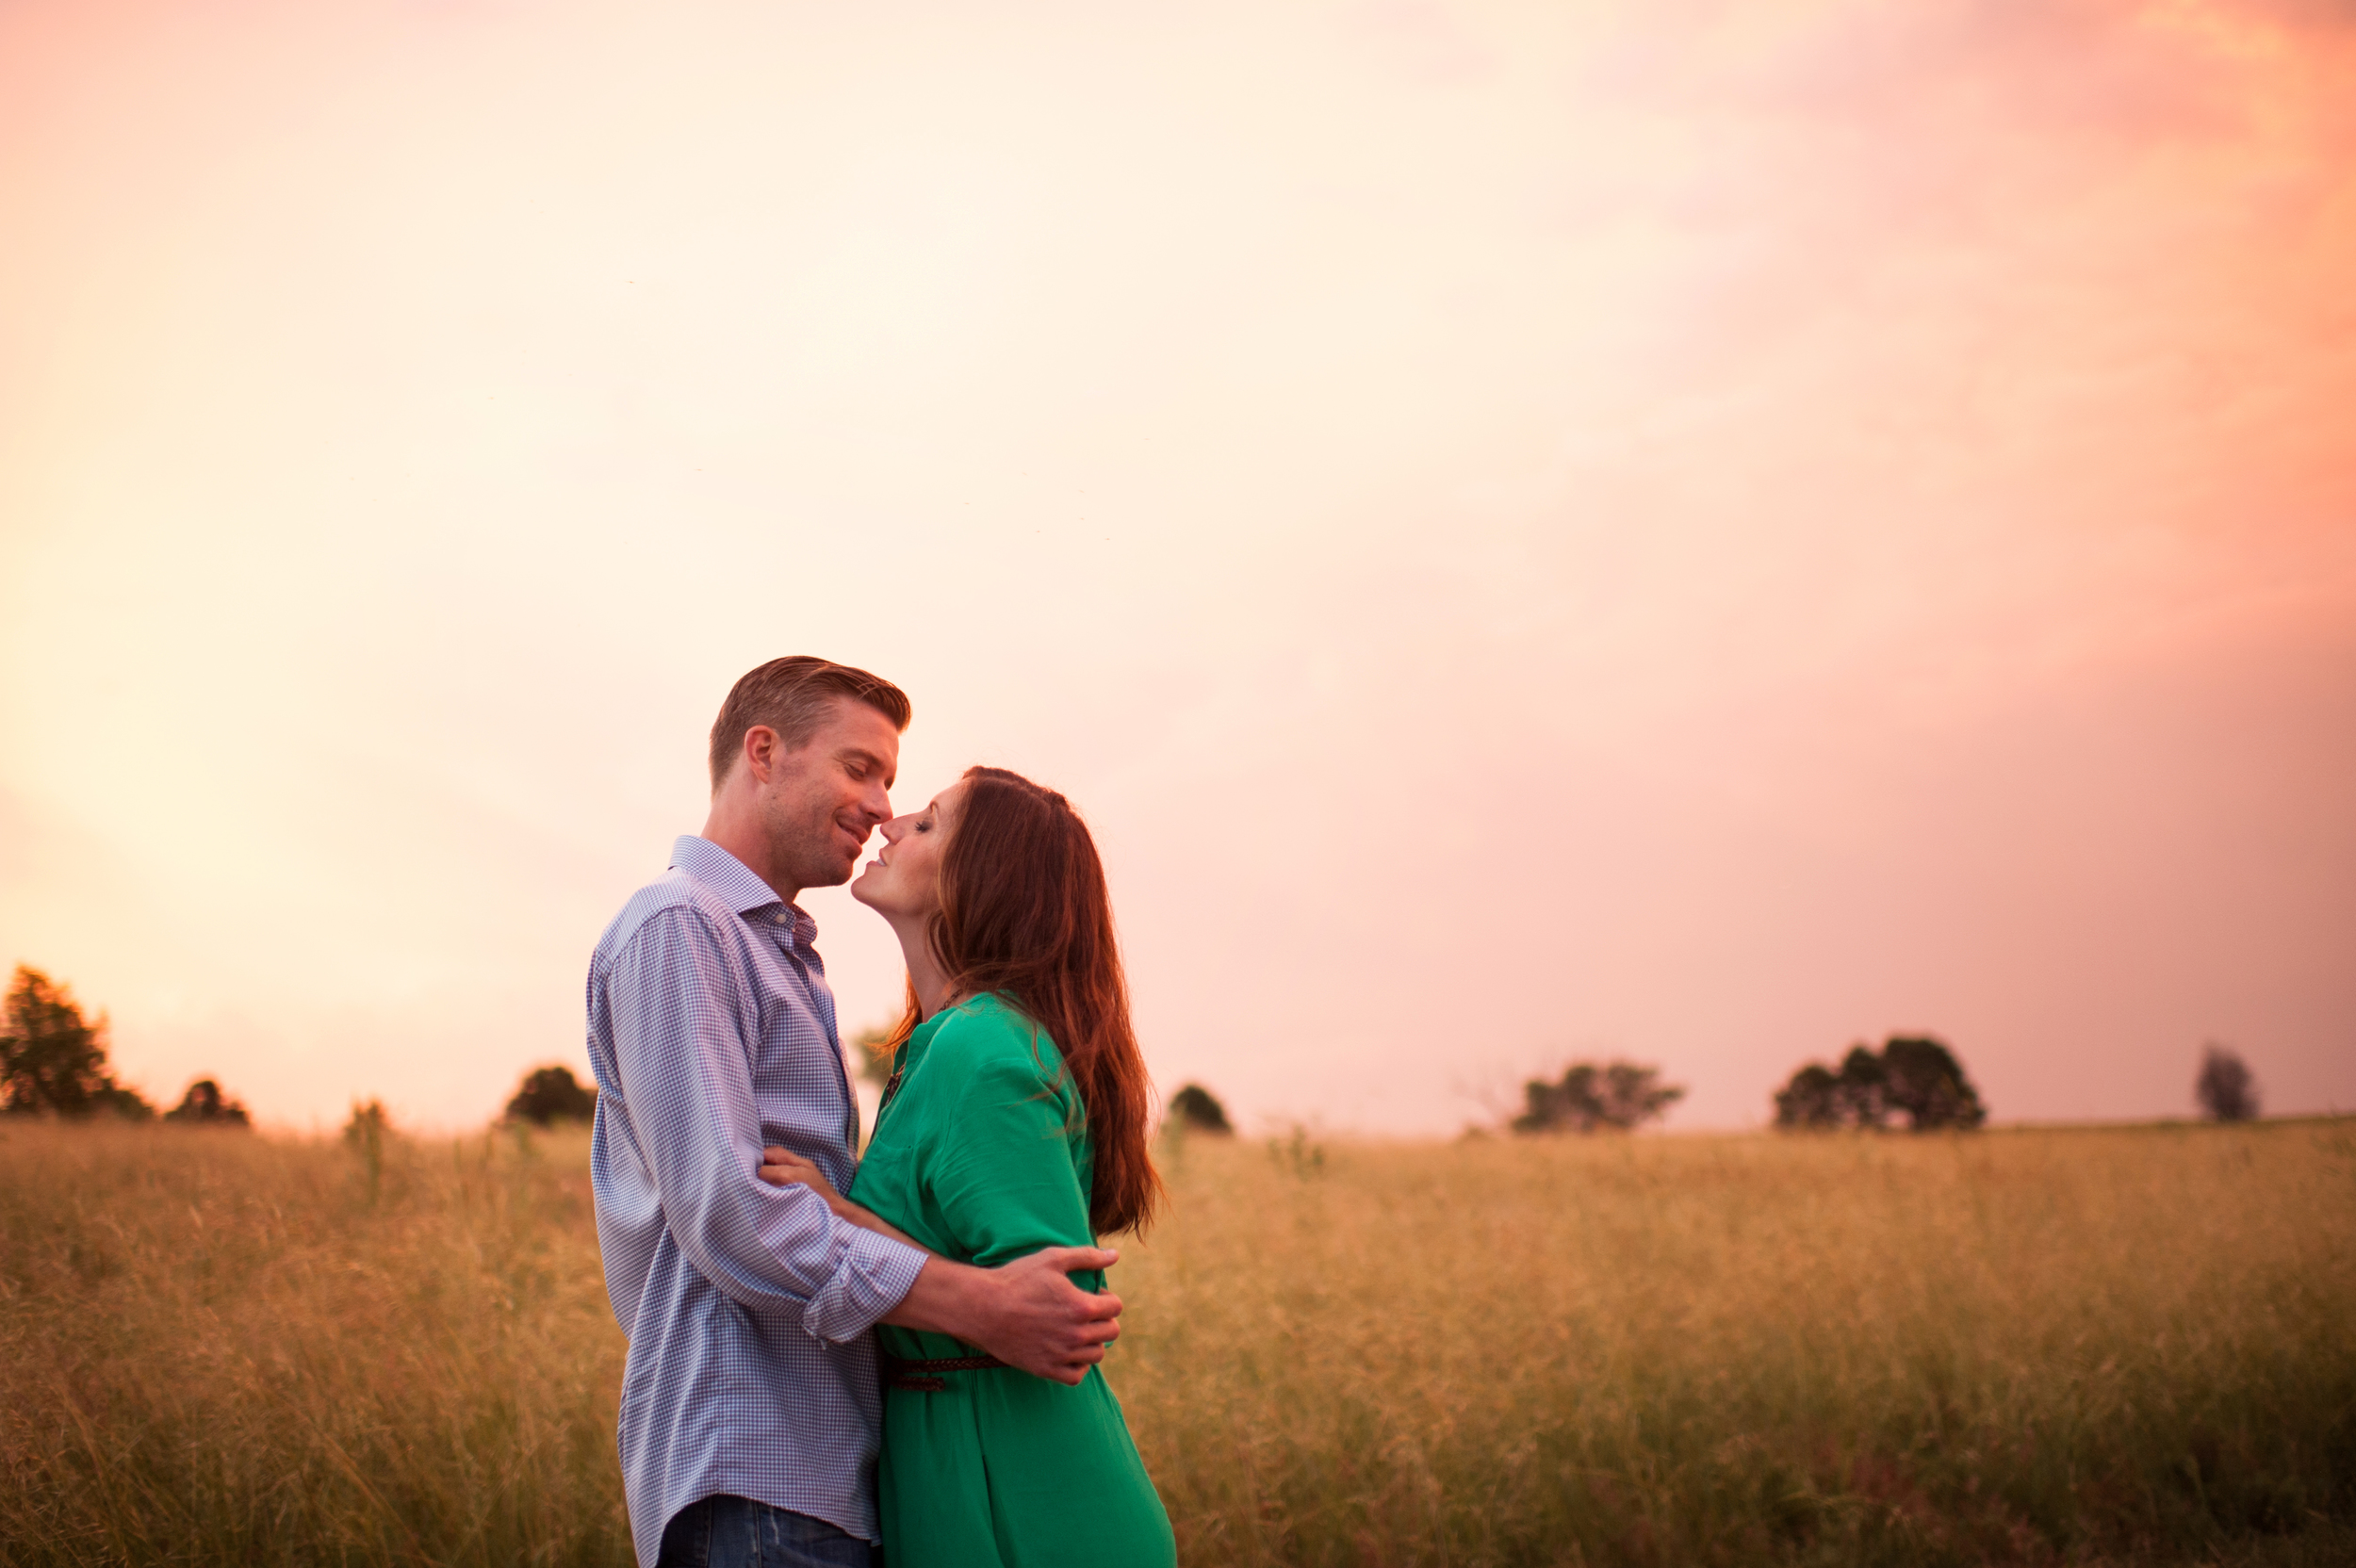 Kim and Paul Engagement Session 0176.JPG